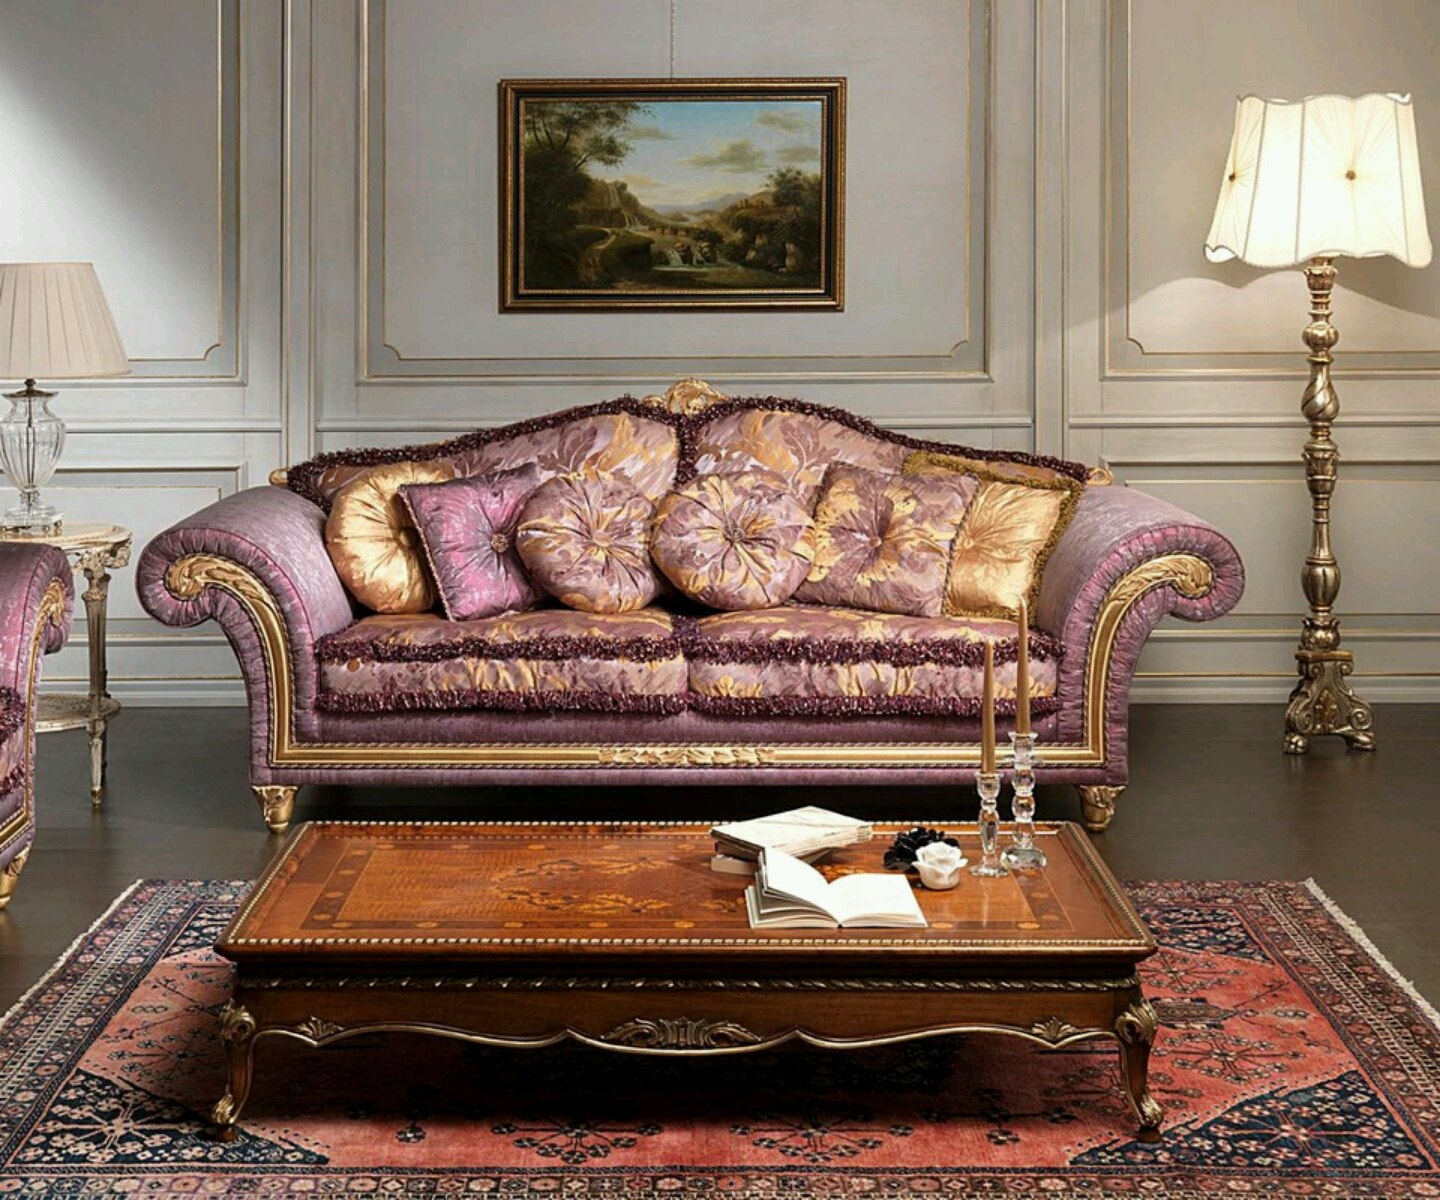 Different Types Of Sofa Seats Daybeds Modern Cushions Cushion Covers This The Best